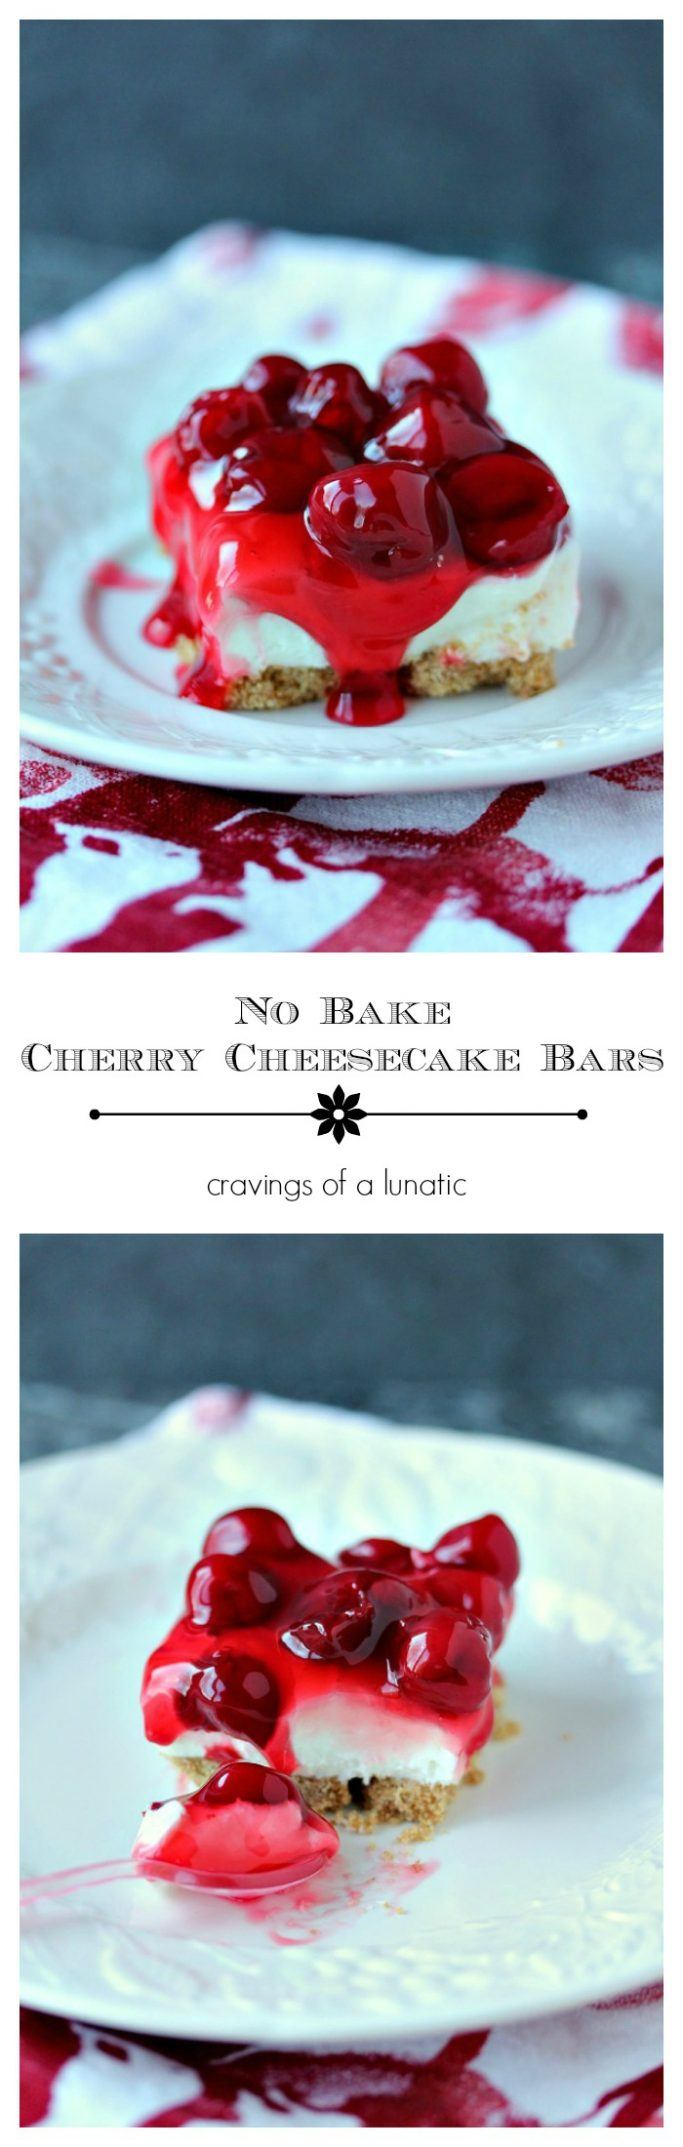 No Bake Cherry Cheesecake Bars- These no bake cherry cheesecake bars are sure to be a hit with family and friends. Whip up a batch today!